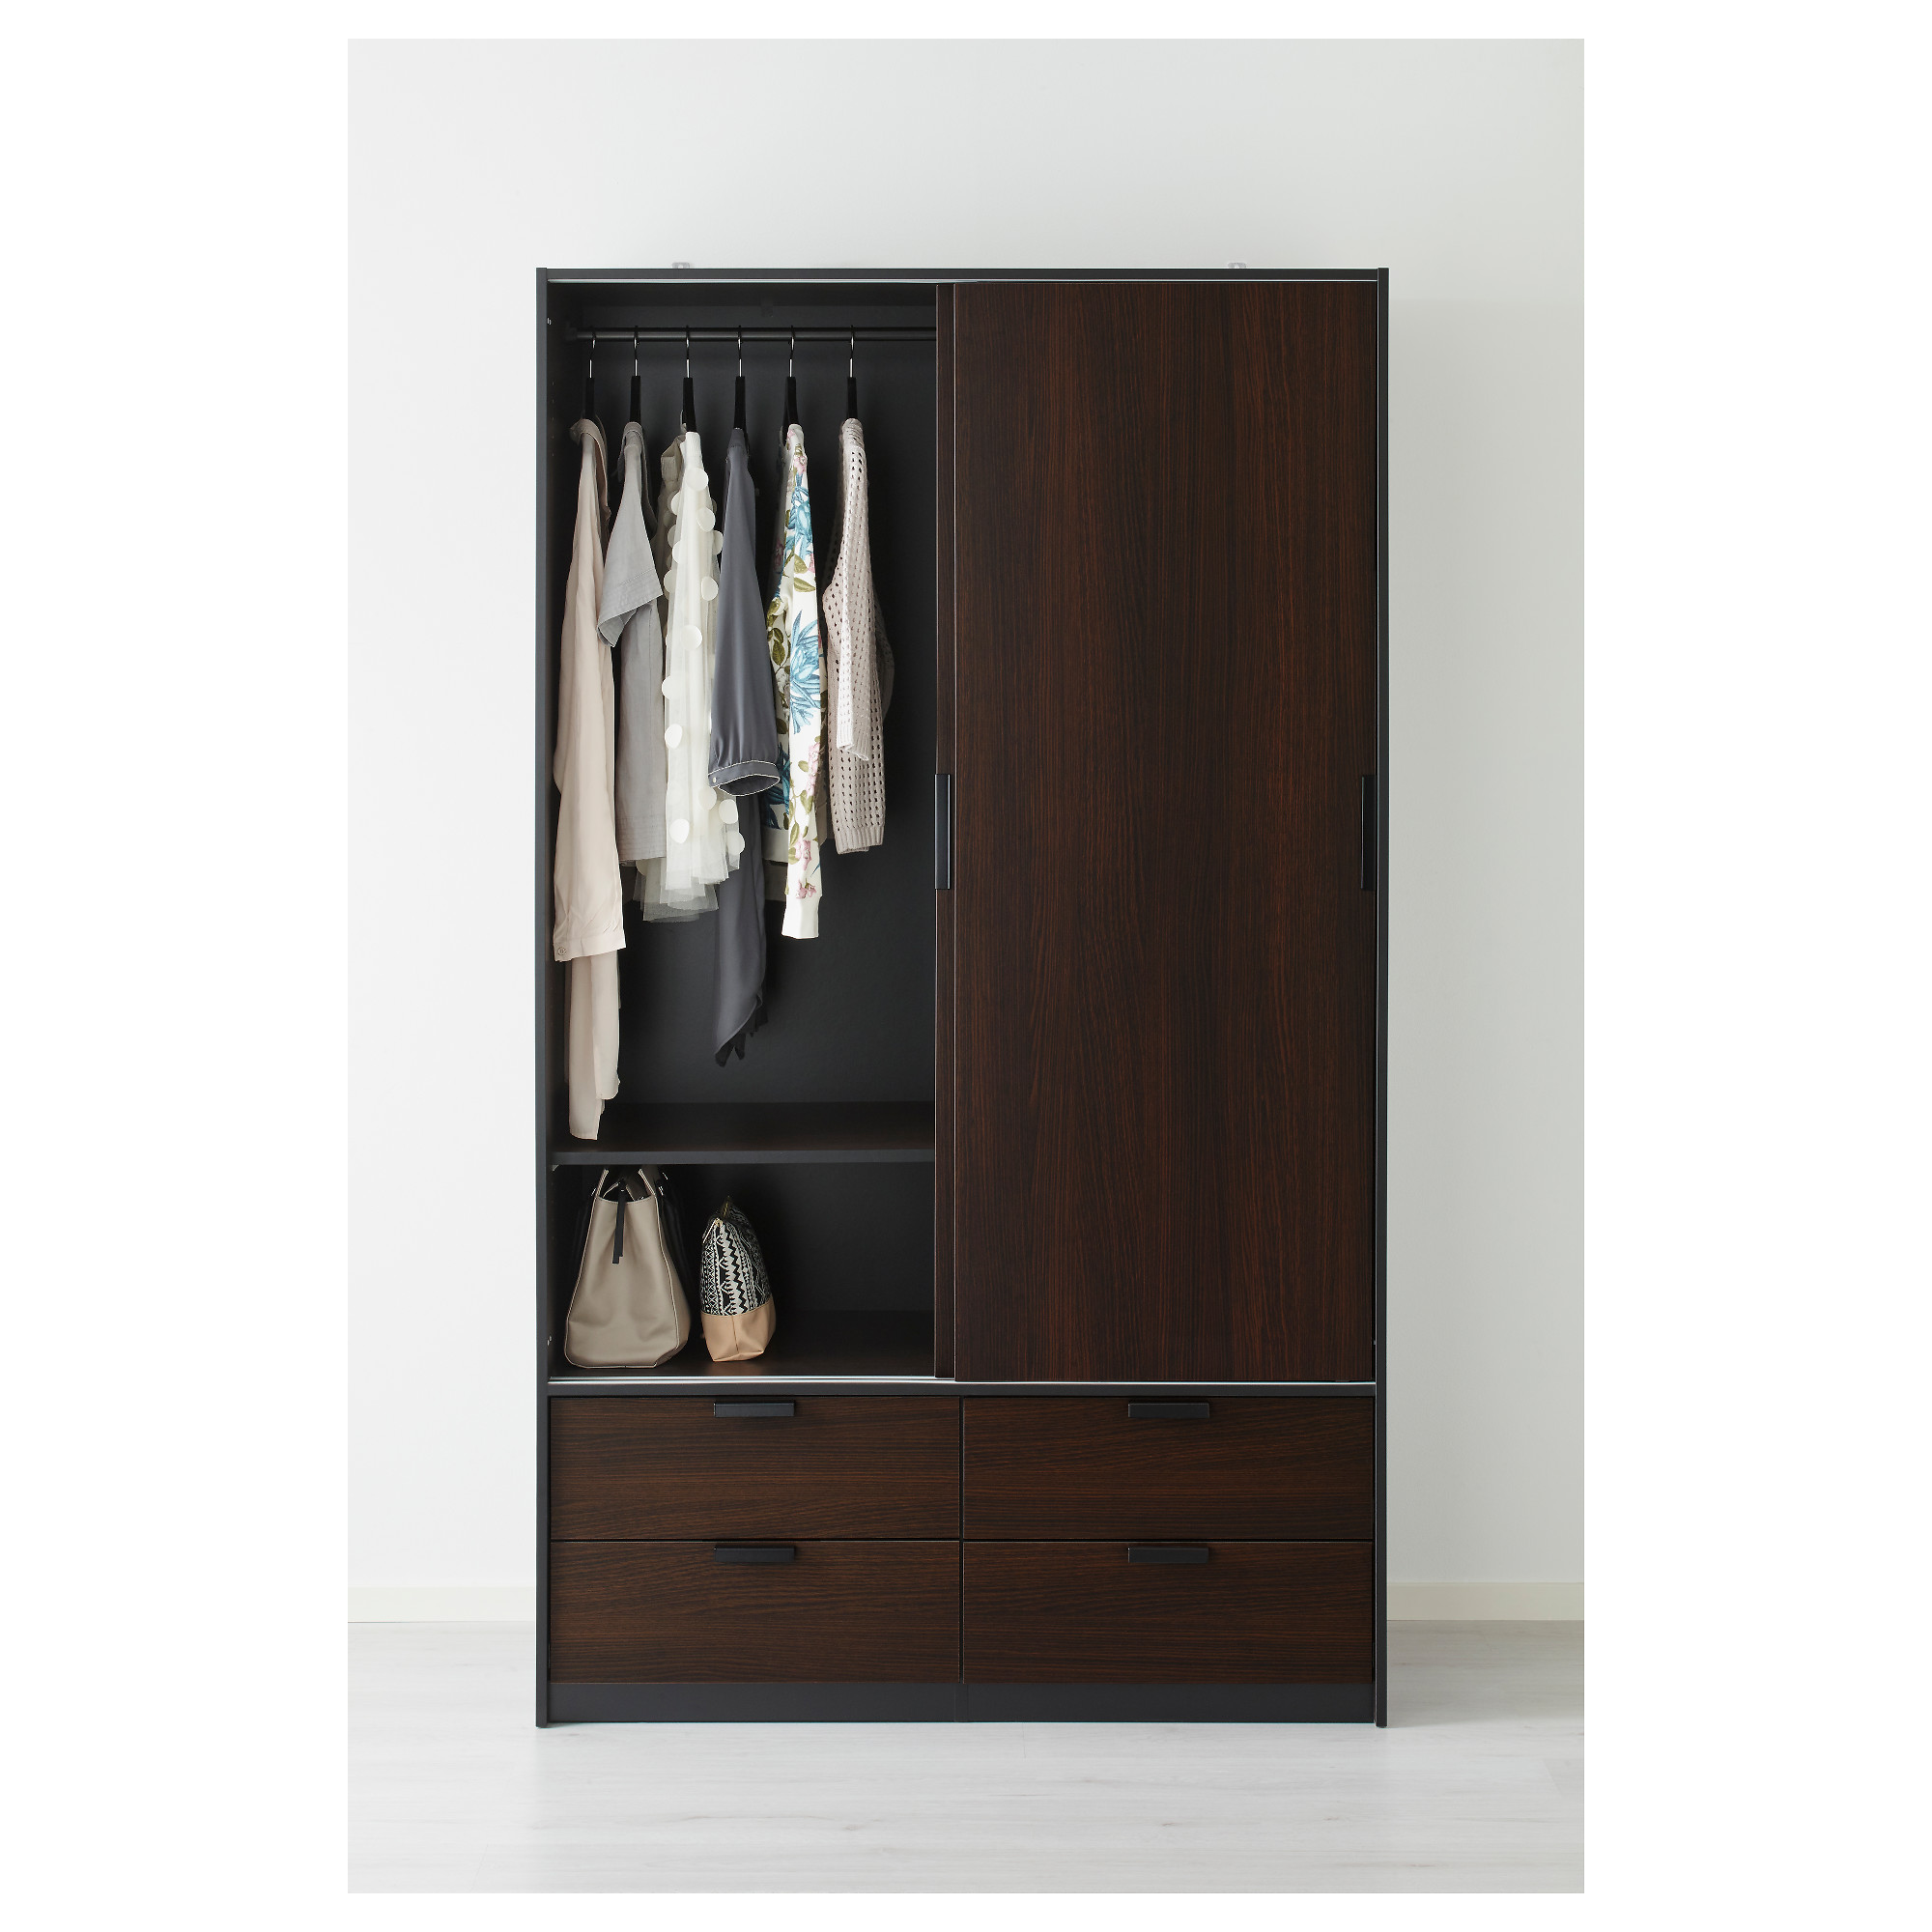 with open hotels wardrobe for hotel drawers contemporary drawer wooden prod product srl room mobilspazio zeus